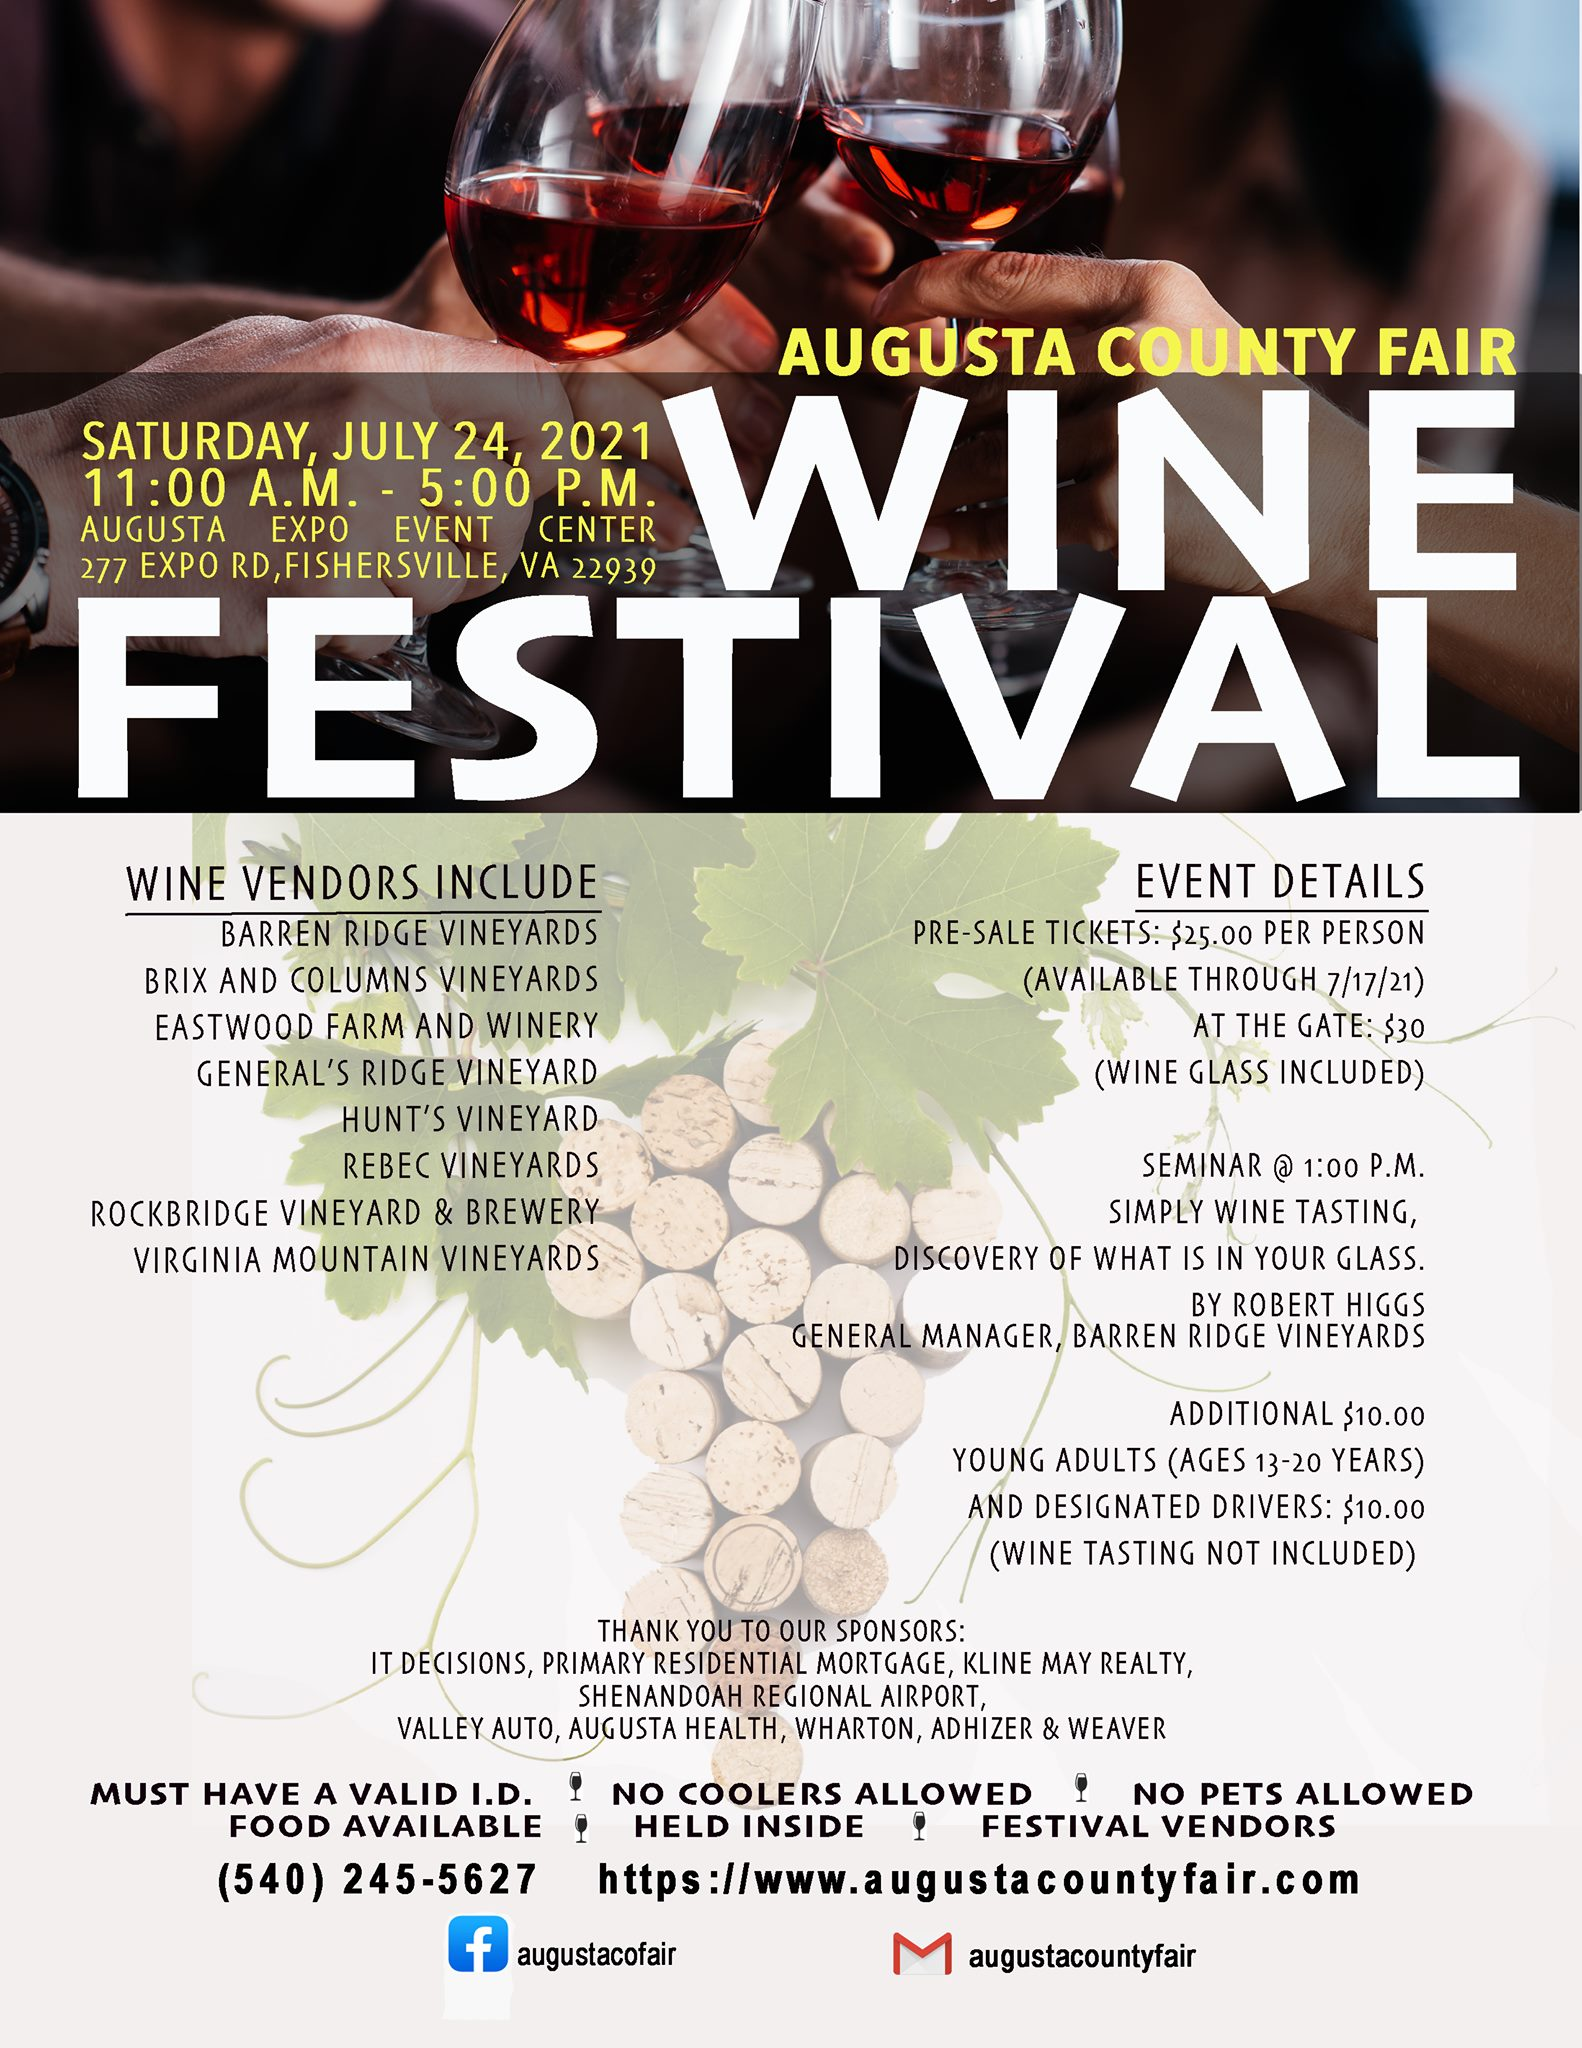 The Augusta County Fair Wine Festival  at Augusta Expo Event Center in Fishersville